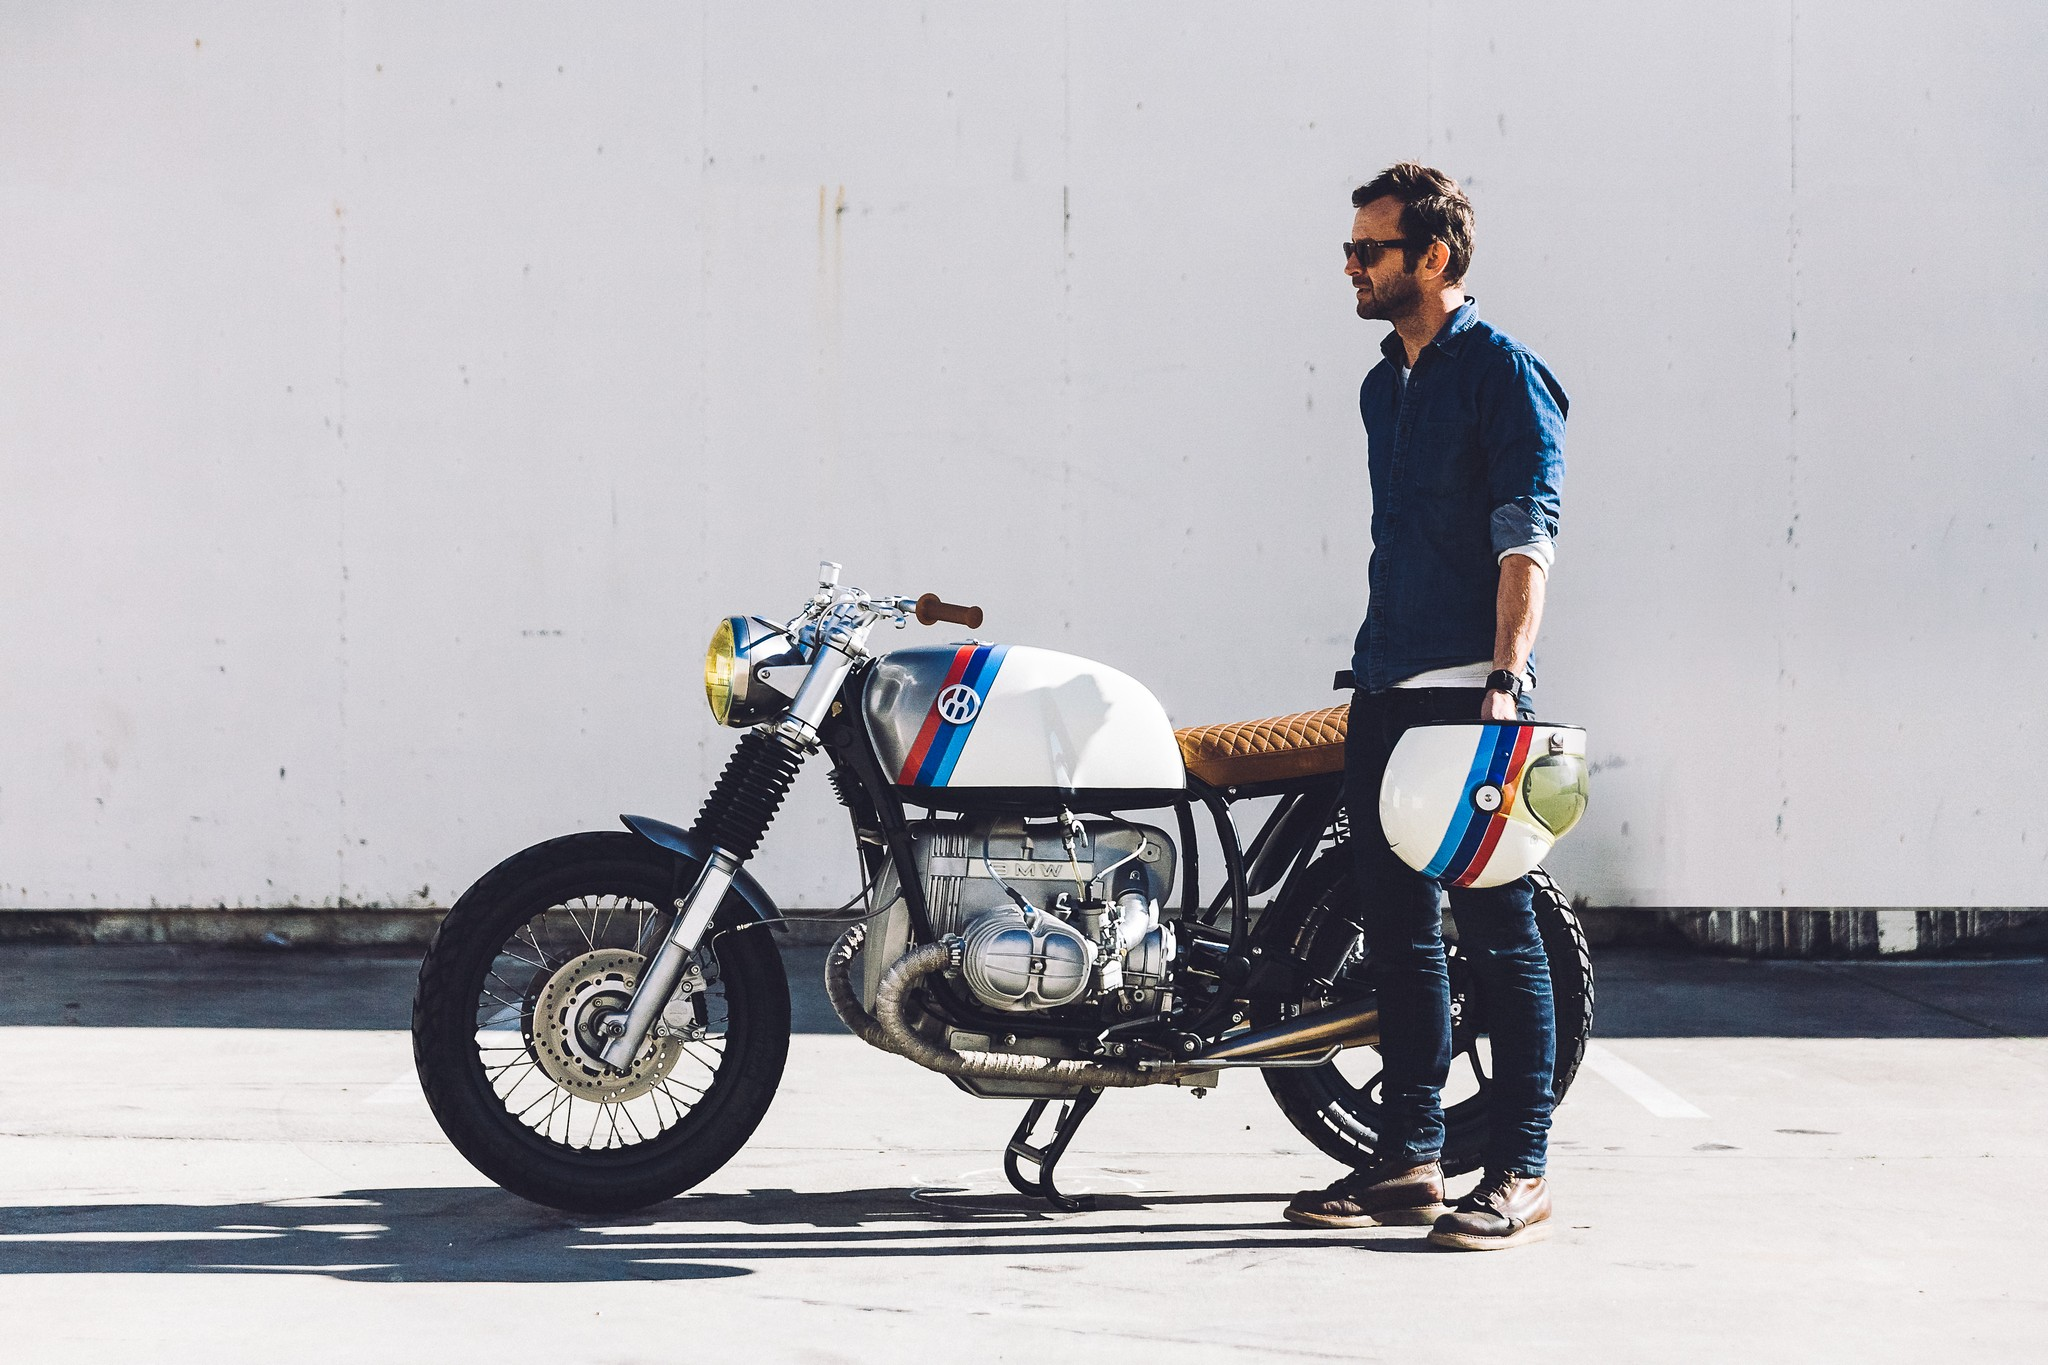 Hugo Eccles from San Francisco's Untitled Motorcycles with a BMW custom